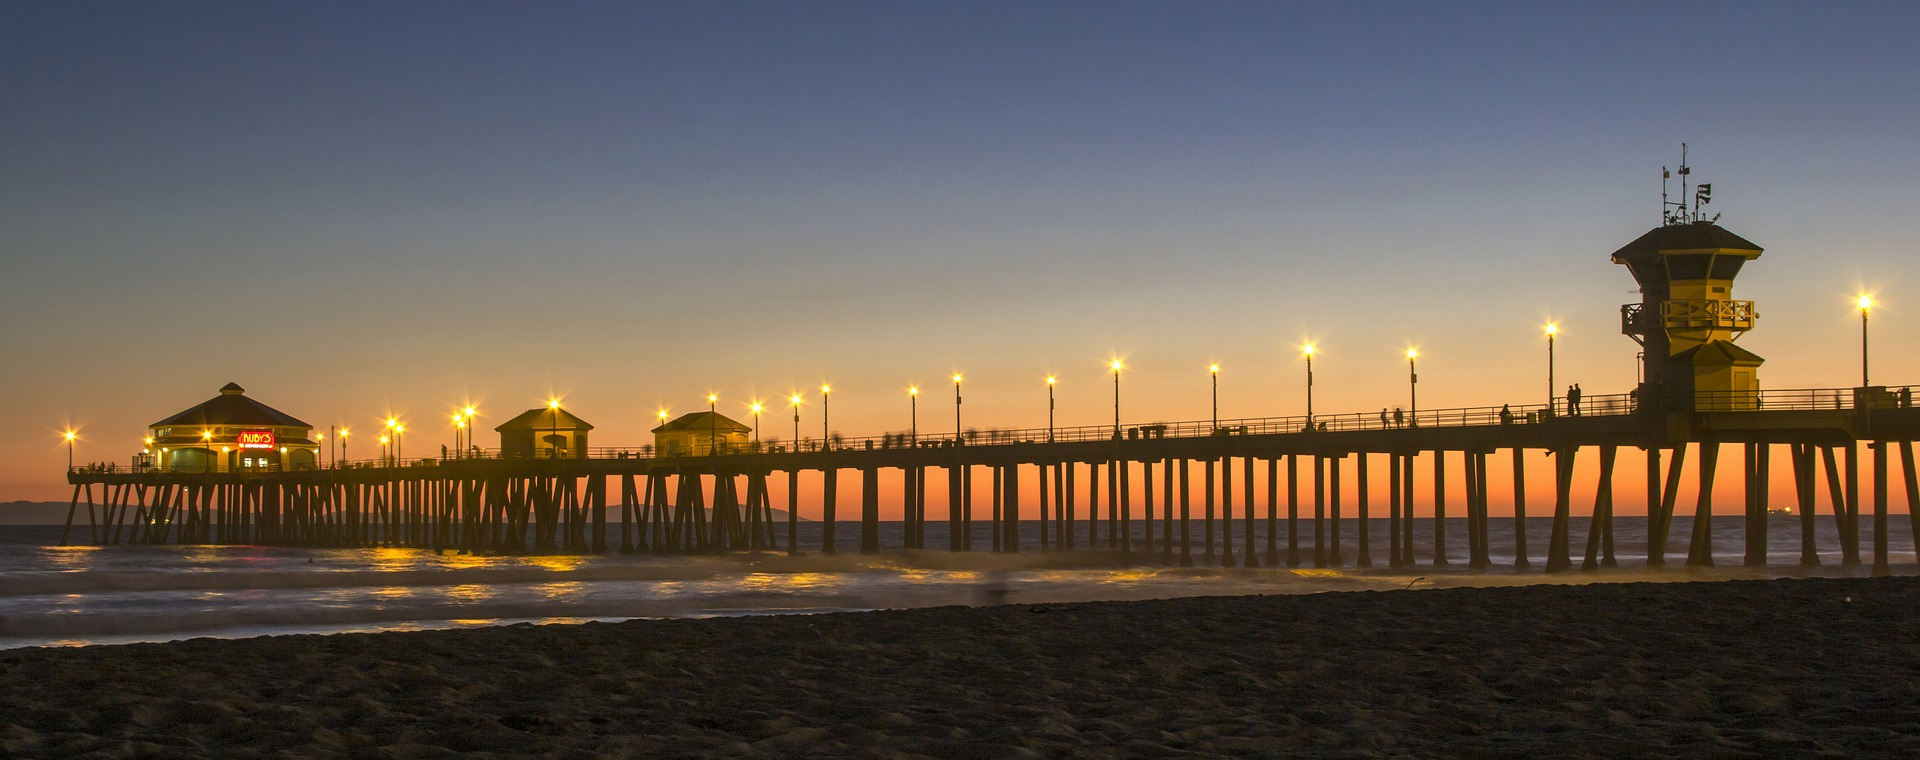 24 hours in Huntington Beach, California – Surf City USA